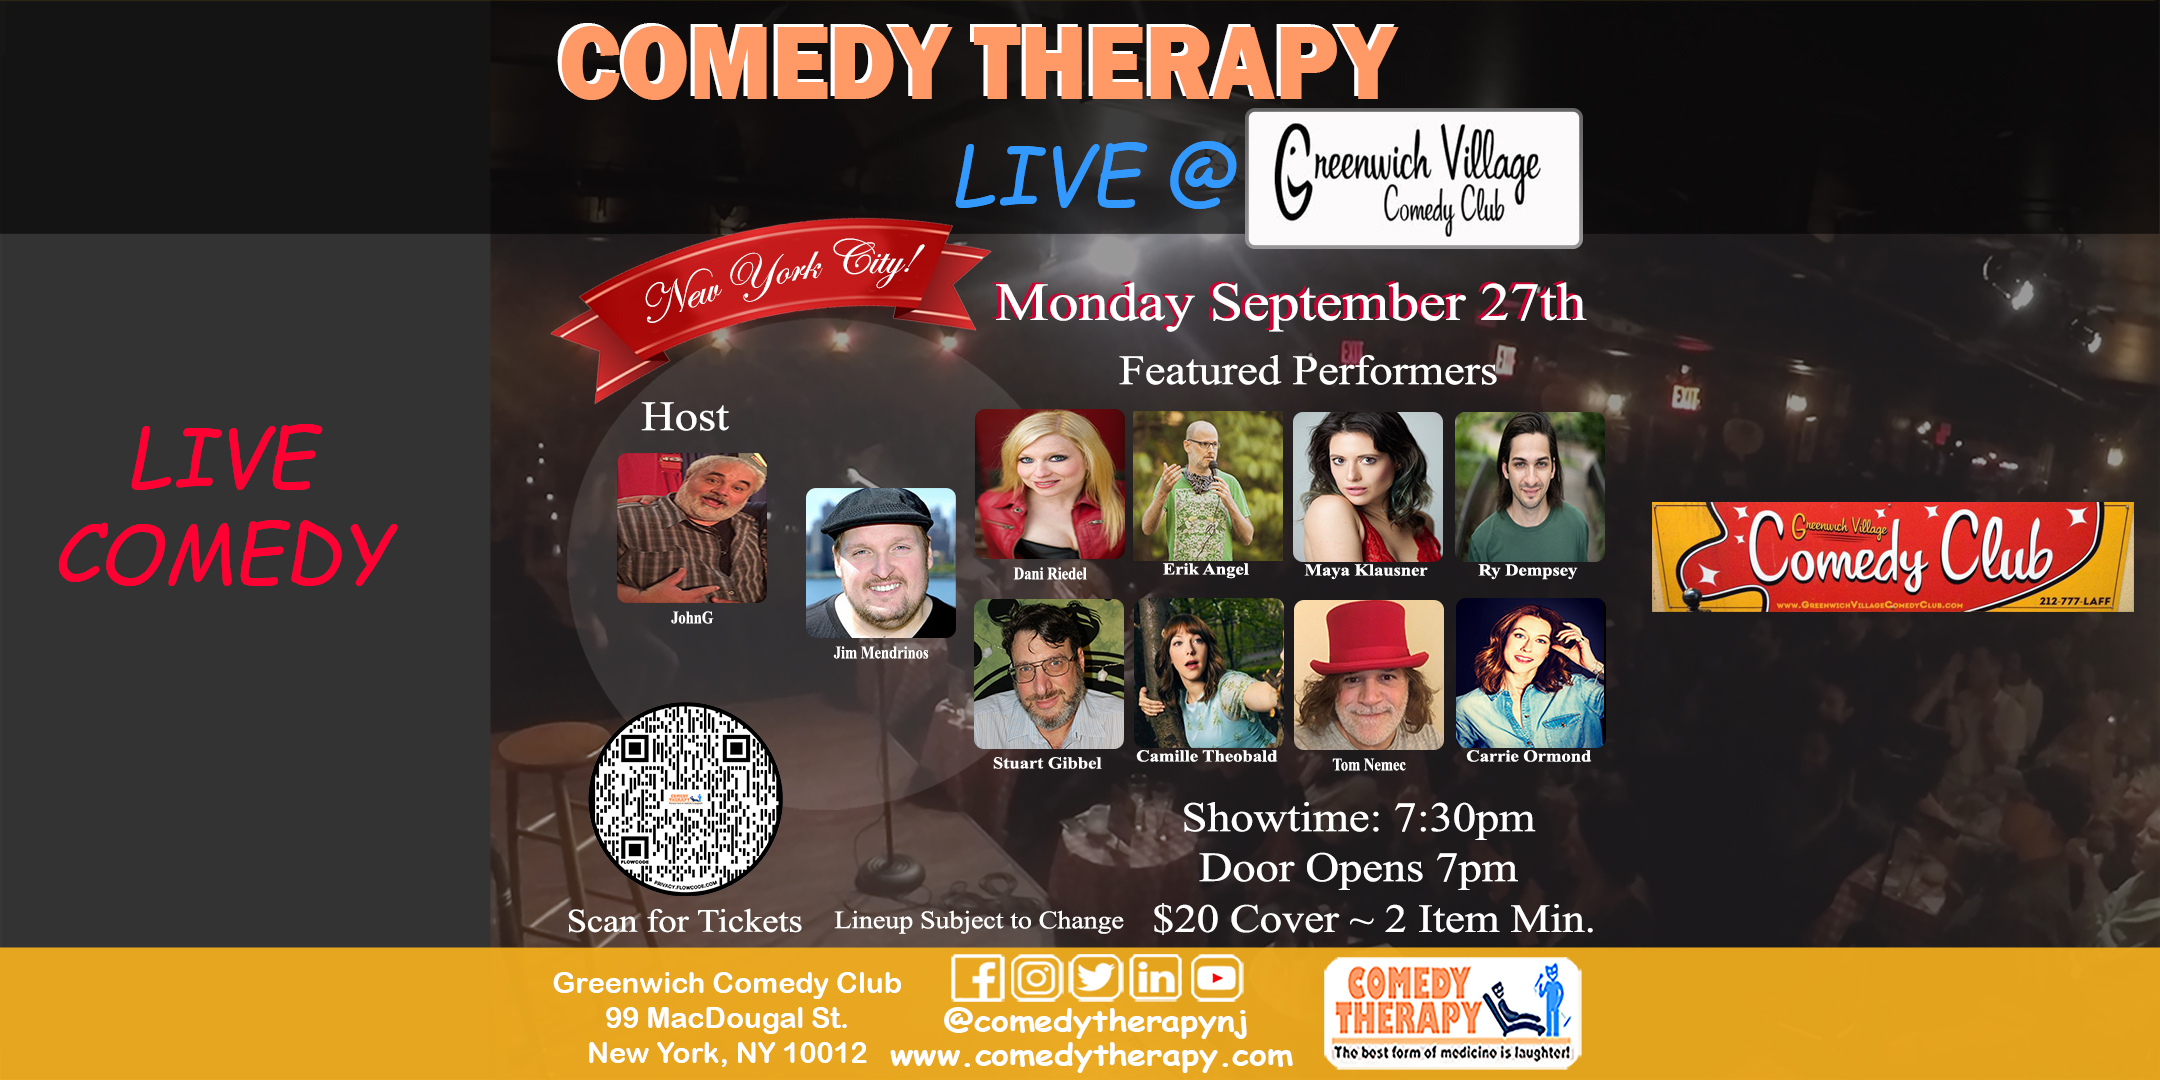 Comedy Therapy Live at Greenwich Village Comedy Club Sept 27